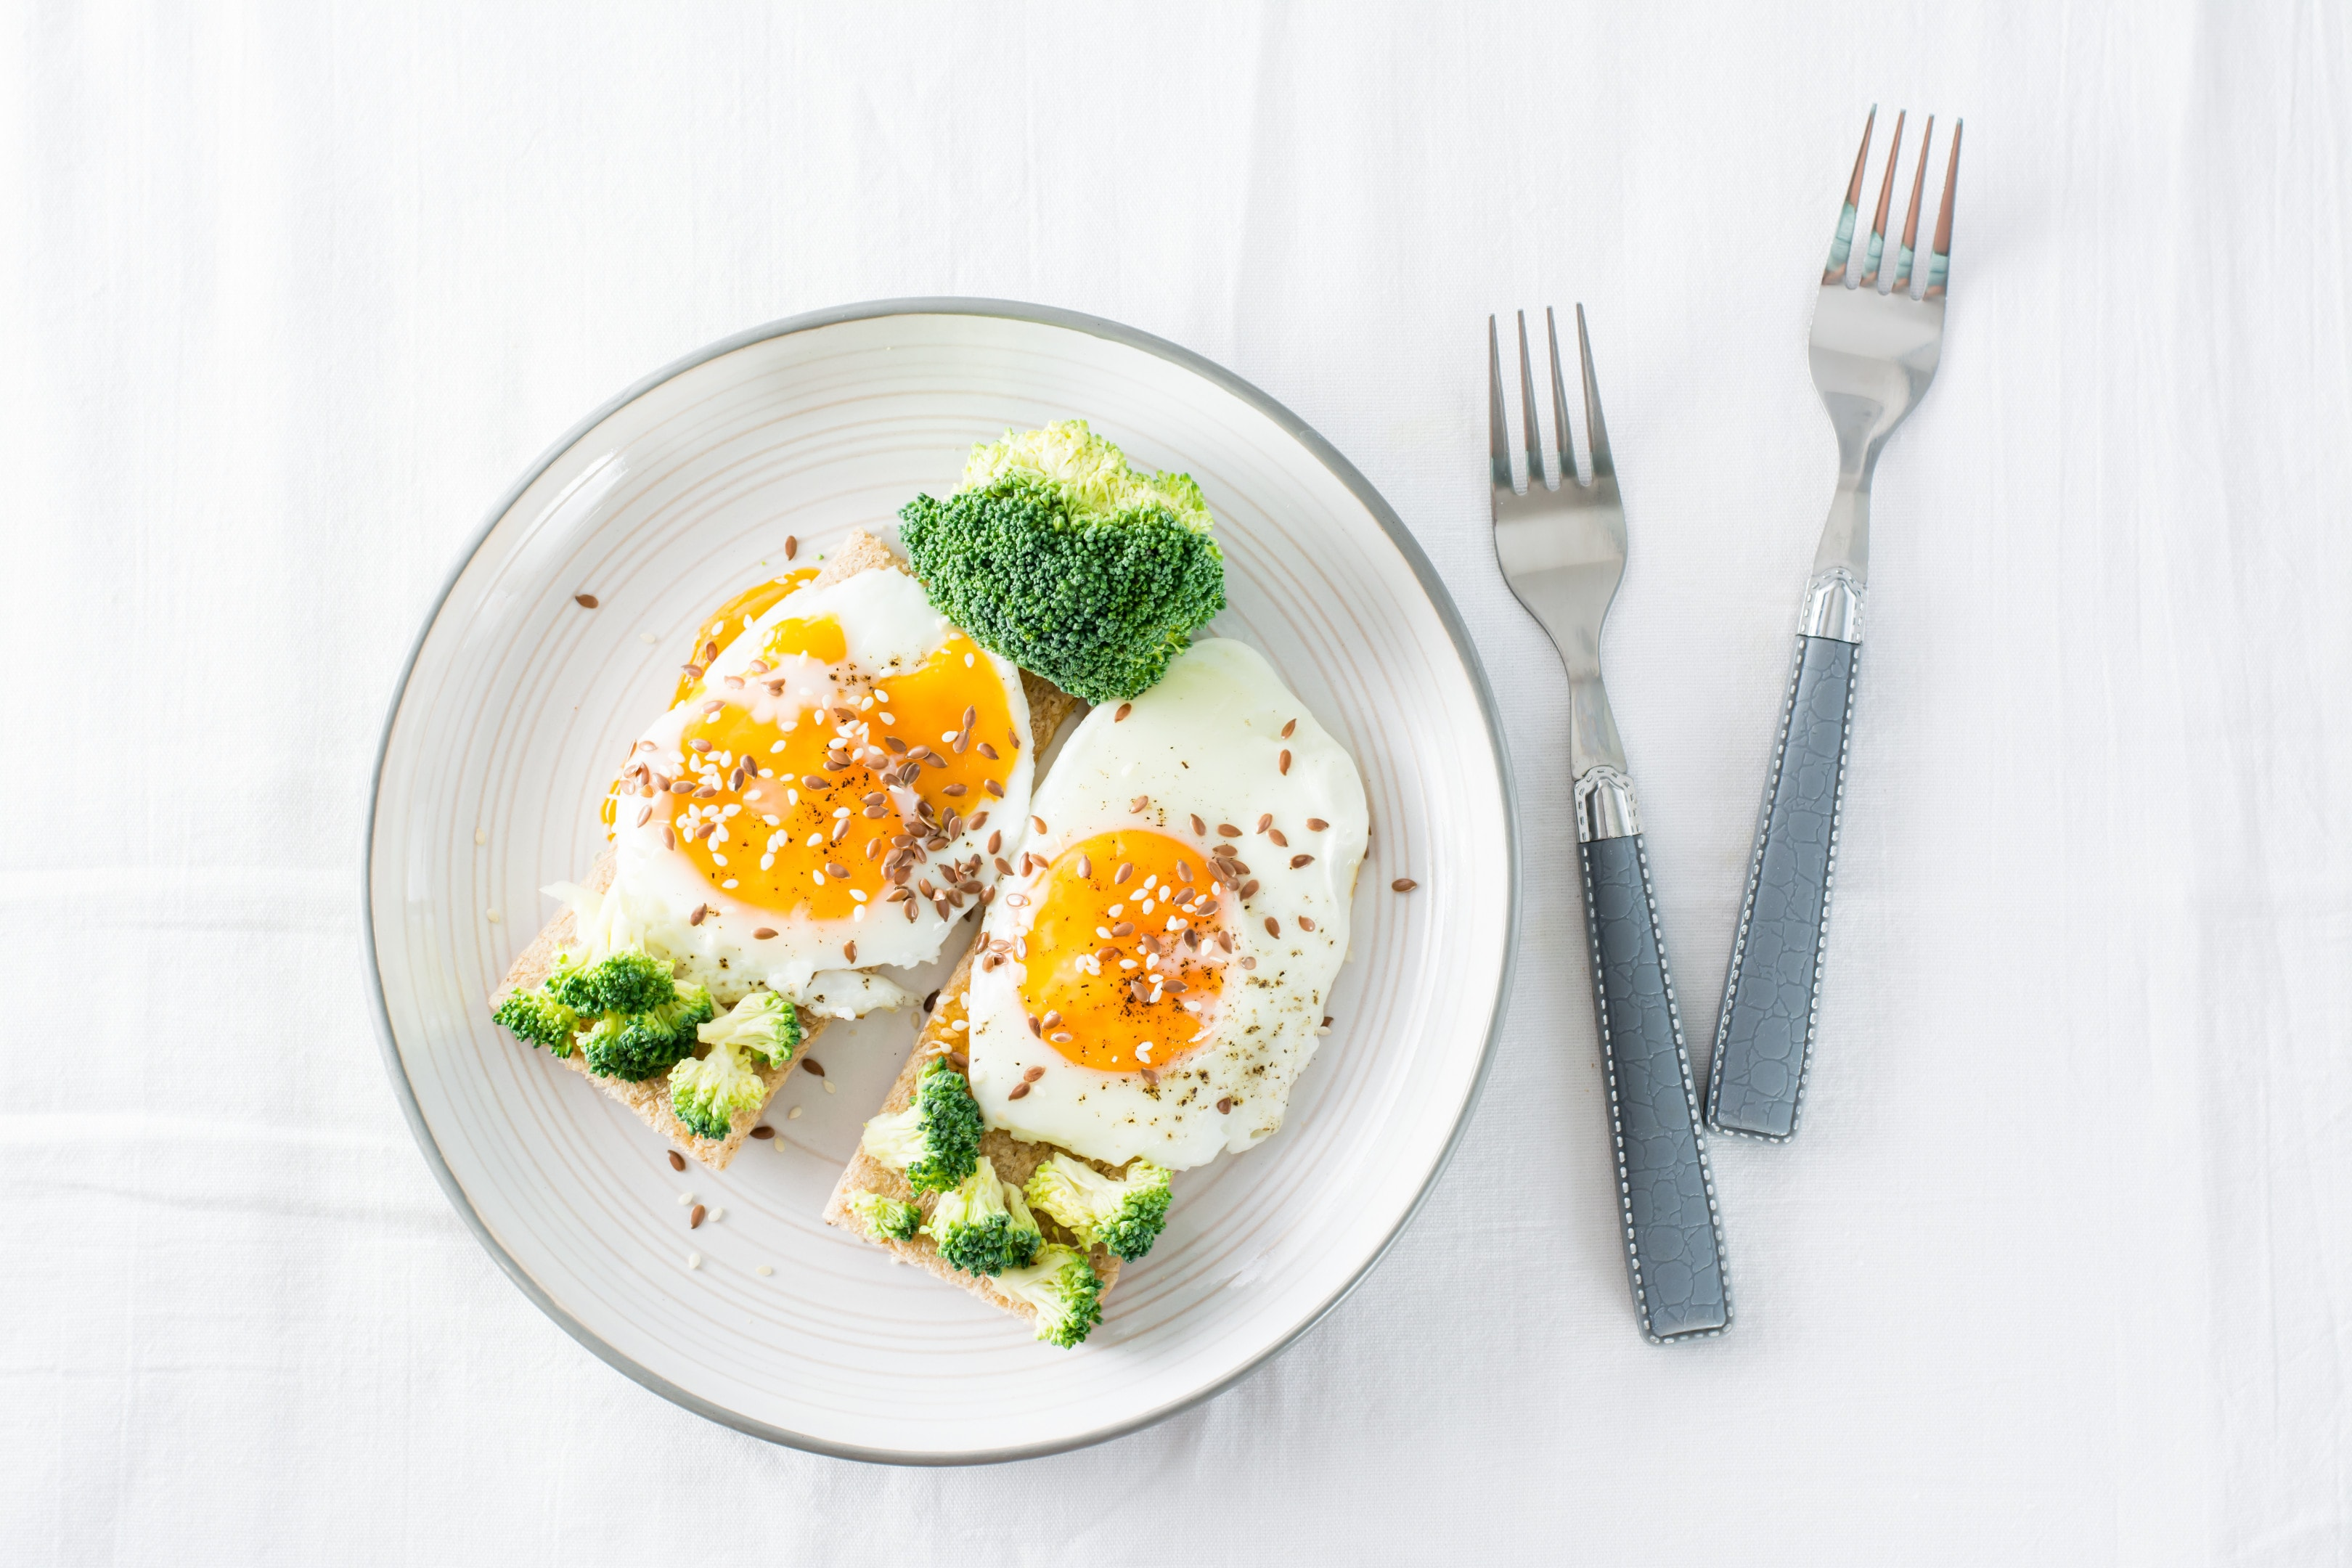 Bruschetta with eggs broccoli sesame seeds and flaxseed